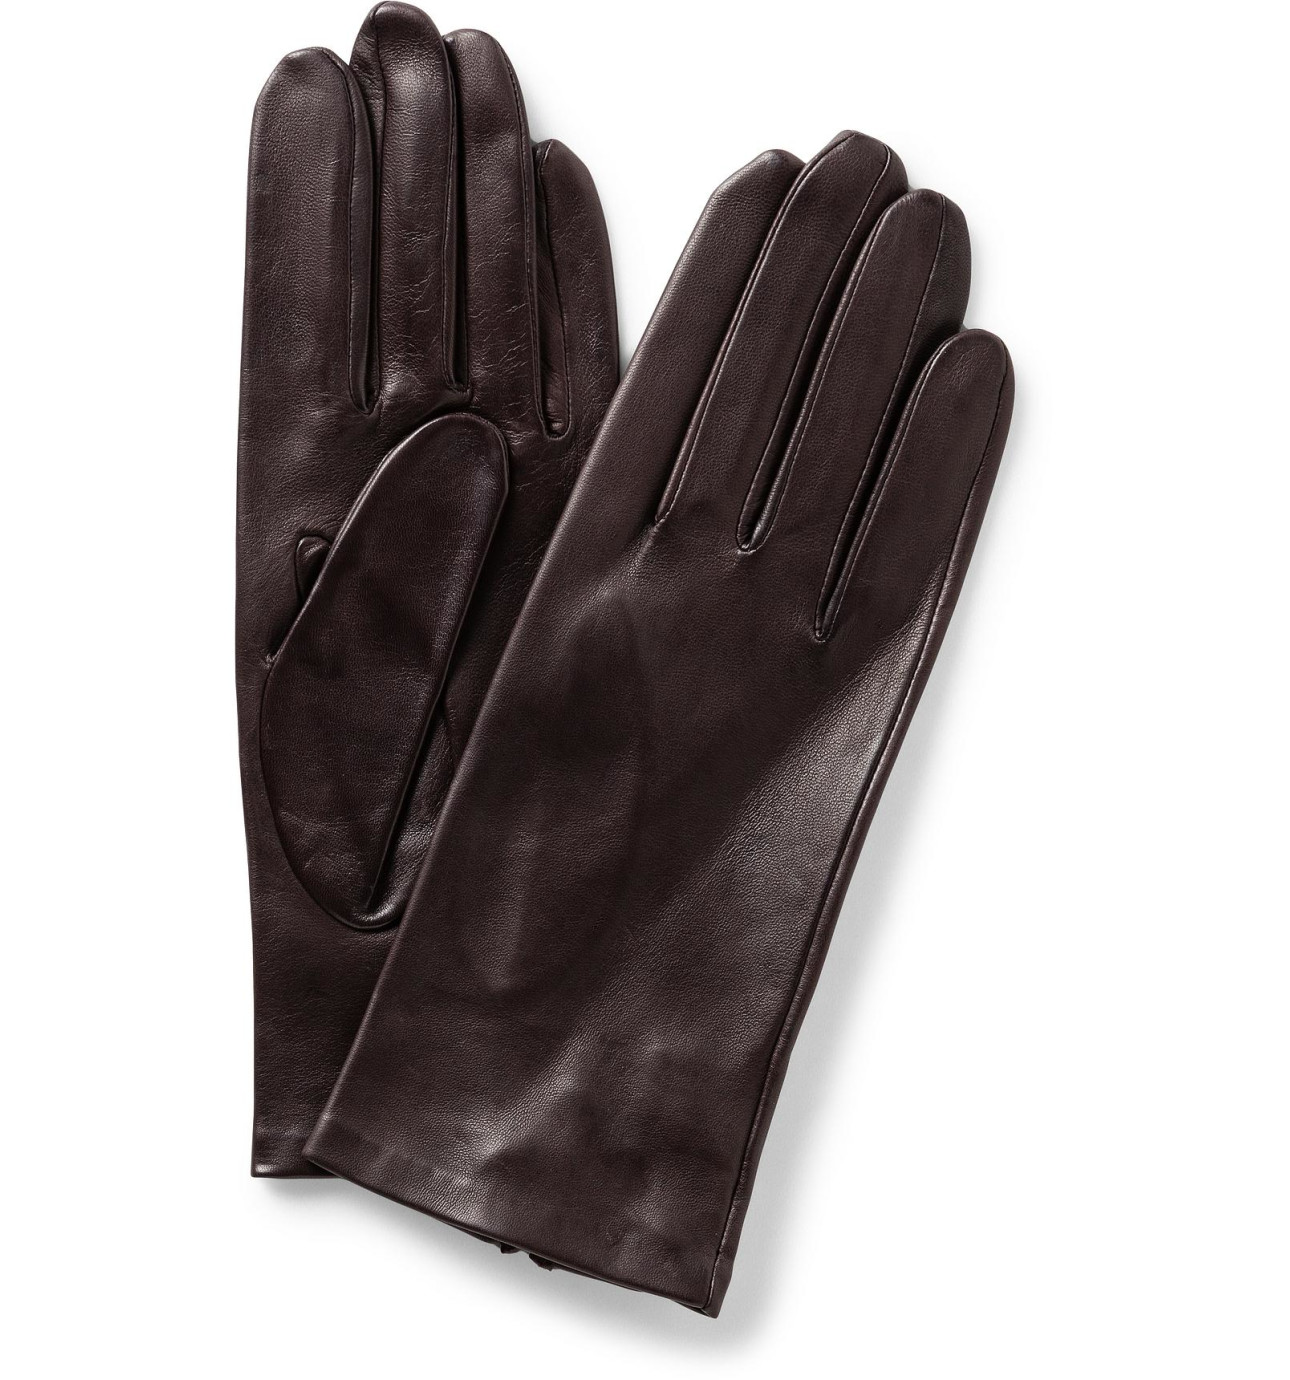 Buy leather gloves perth - Milana Unlined Leather Glove Pt